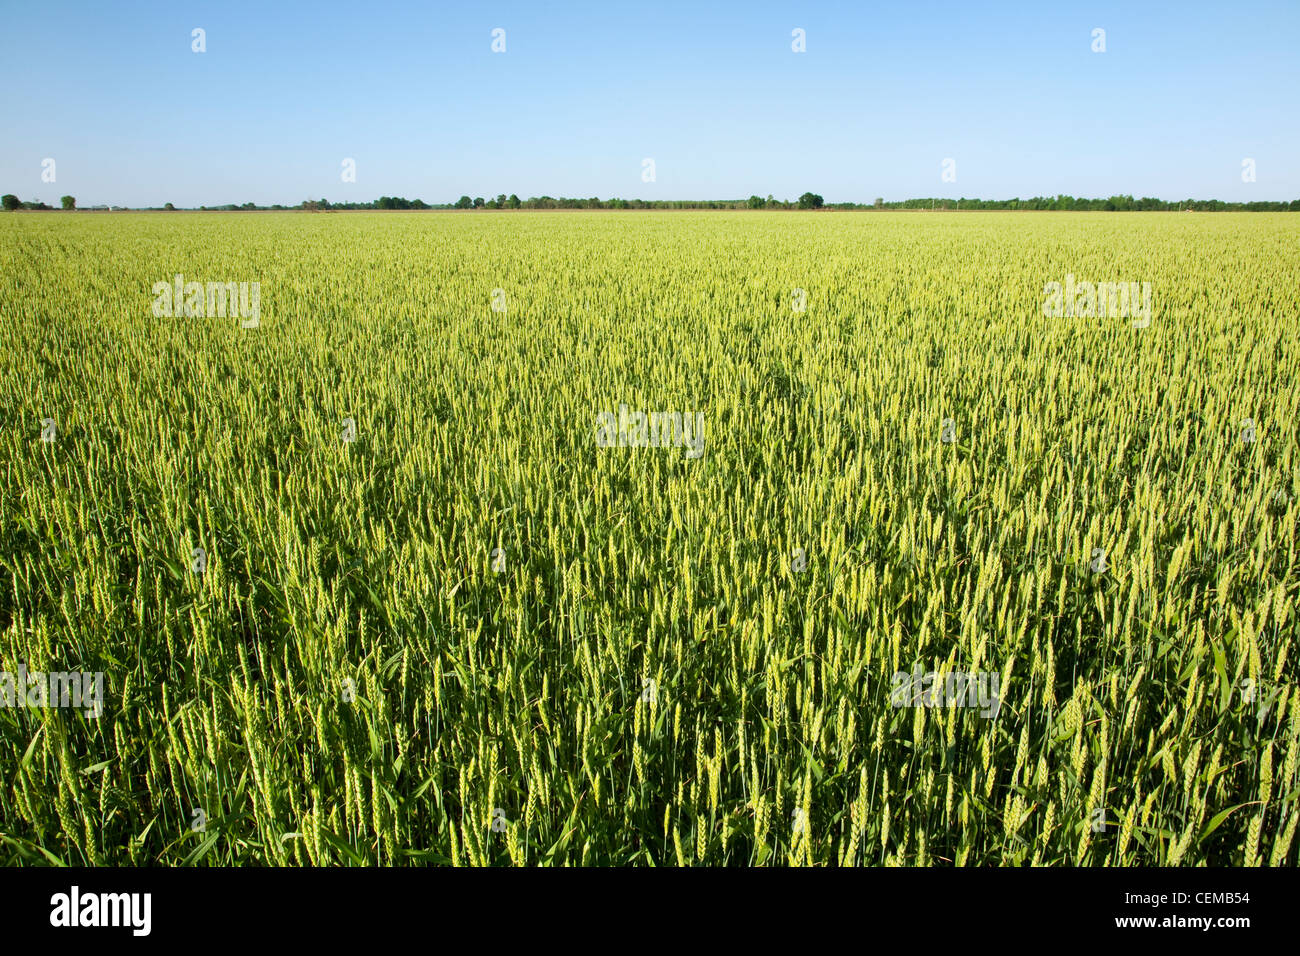 Field of headed out maturing mid growth soft red winter wheat in mid Spring. This crop will mature and be harvested - Stock Image